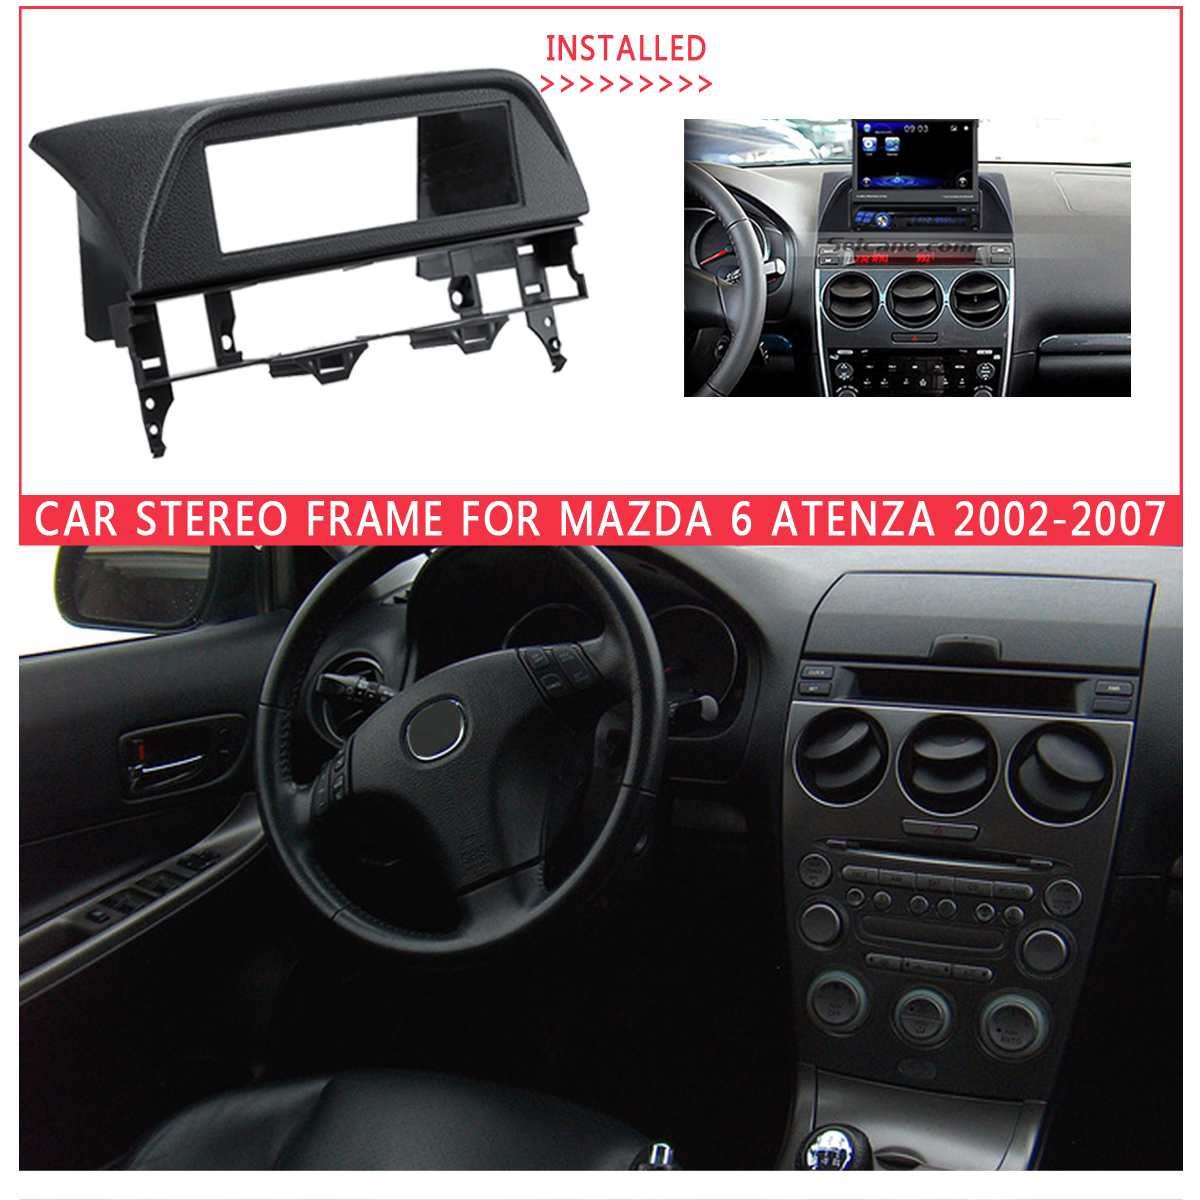 1 DIN Car <font><b>Radio</b></font> Fascia Mounted Kit for <font><b>Mazda</b></font> <font><b>6</b></font> Atenza 2002 2003 -2007 Stereo Dashboard Surrounded Panel Fitting <font><b>Frame</b></font> Grey Black image